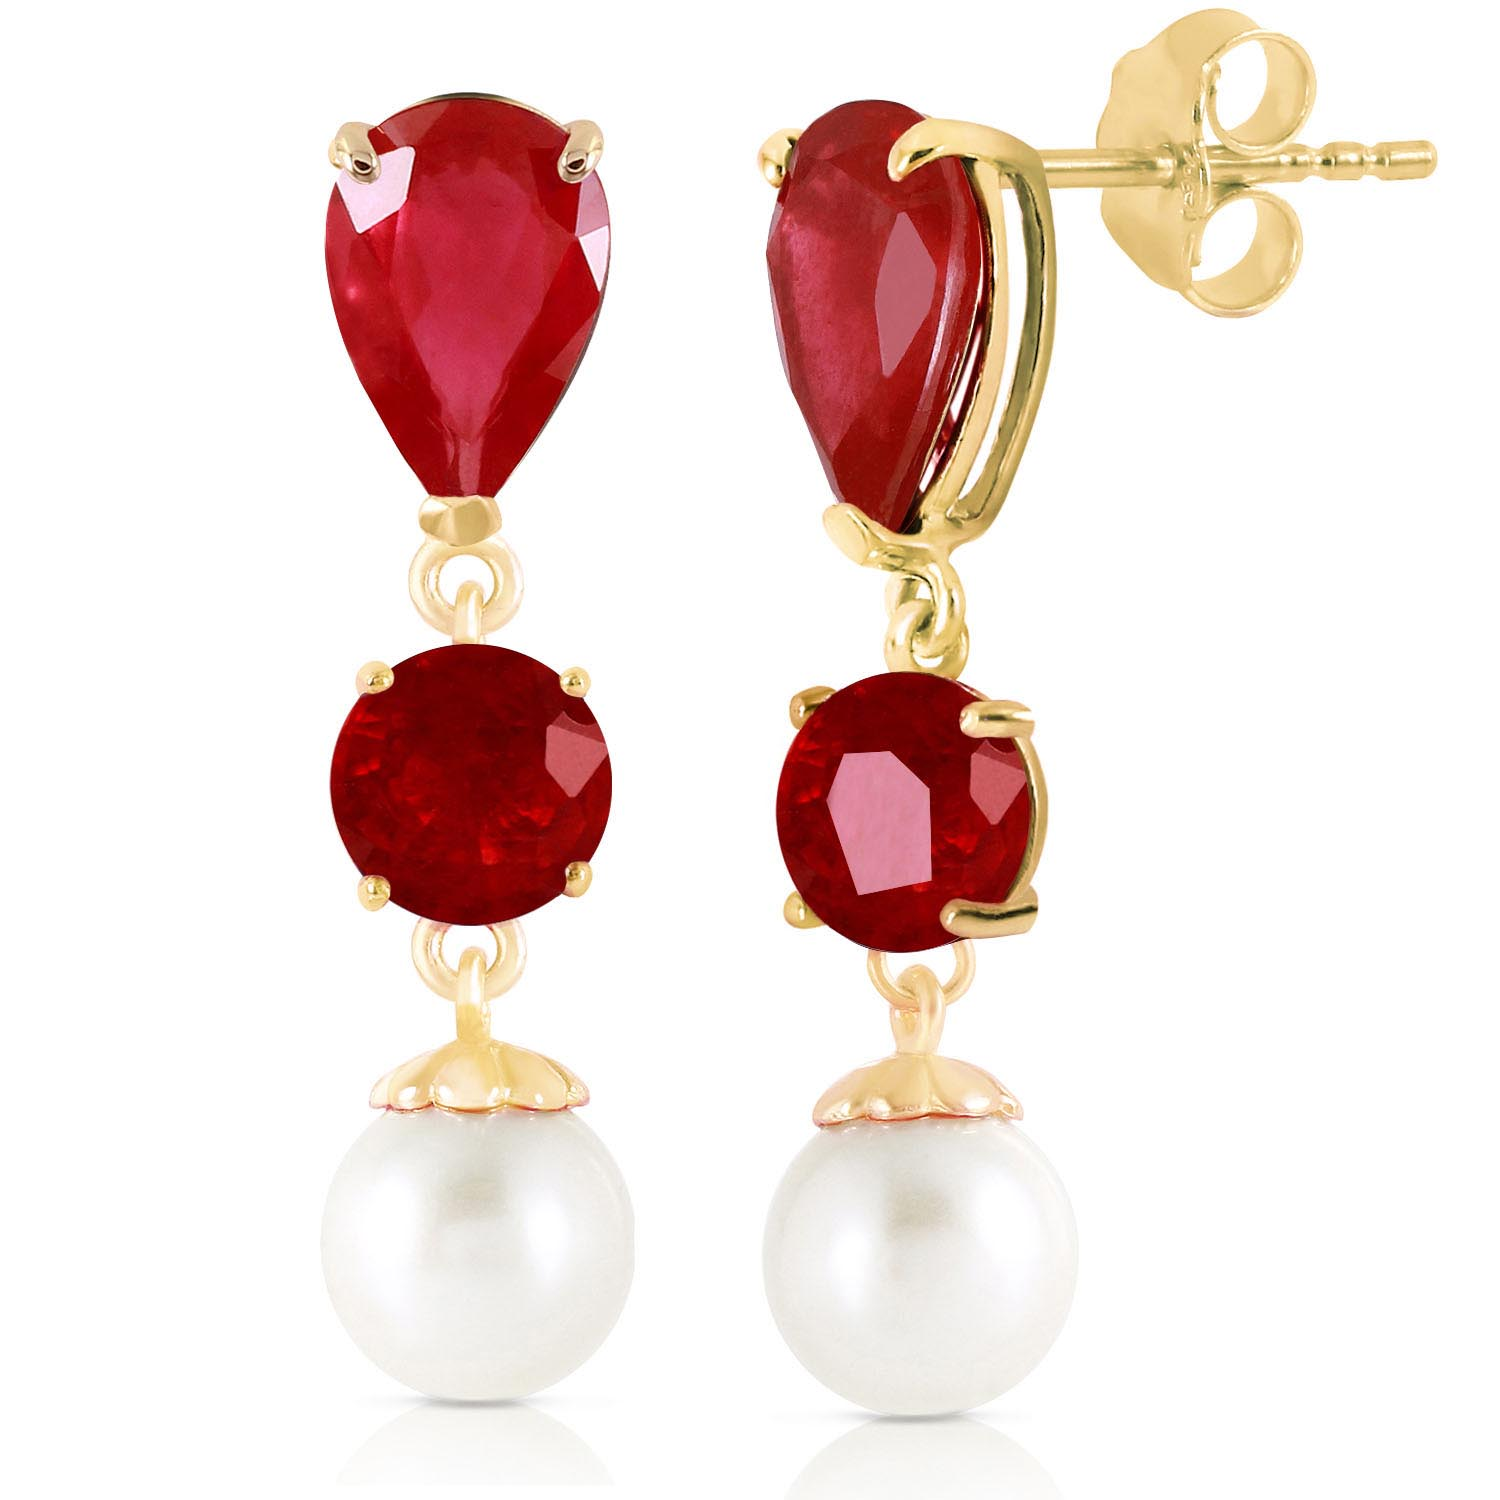 Ruby & Pearl Droplet Earrings in 9ct Gold